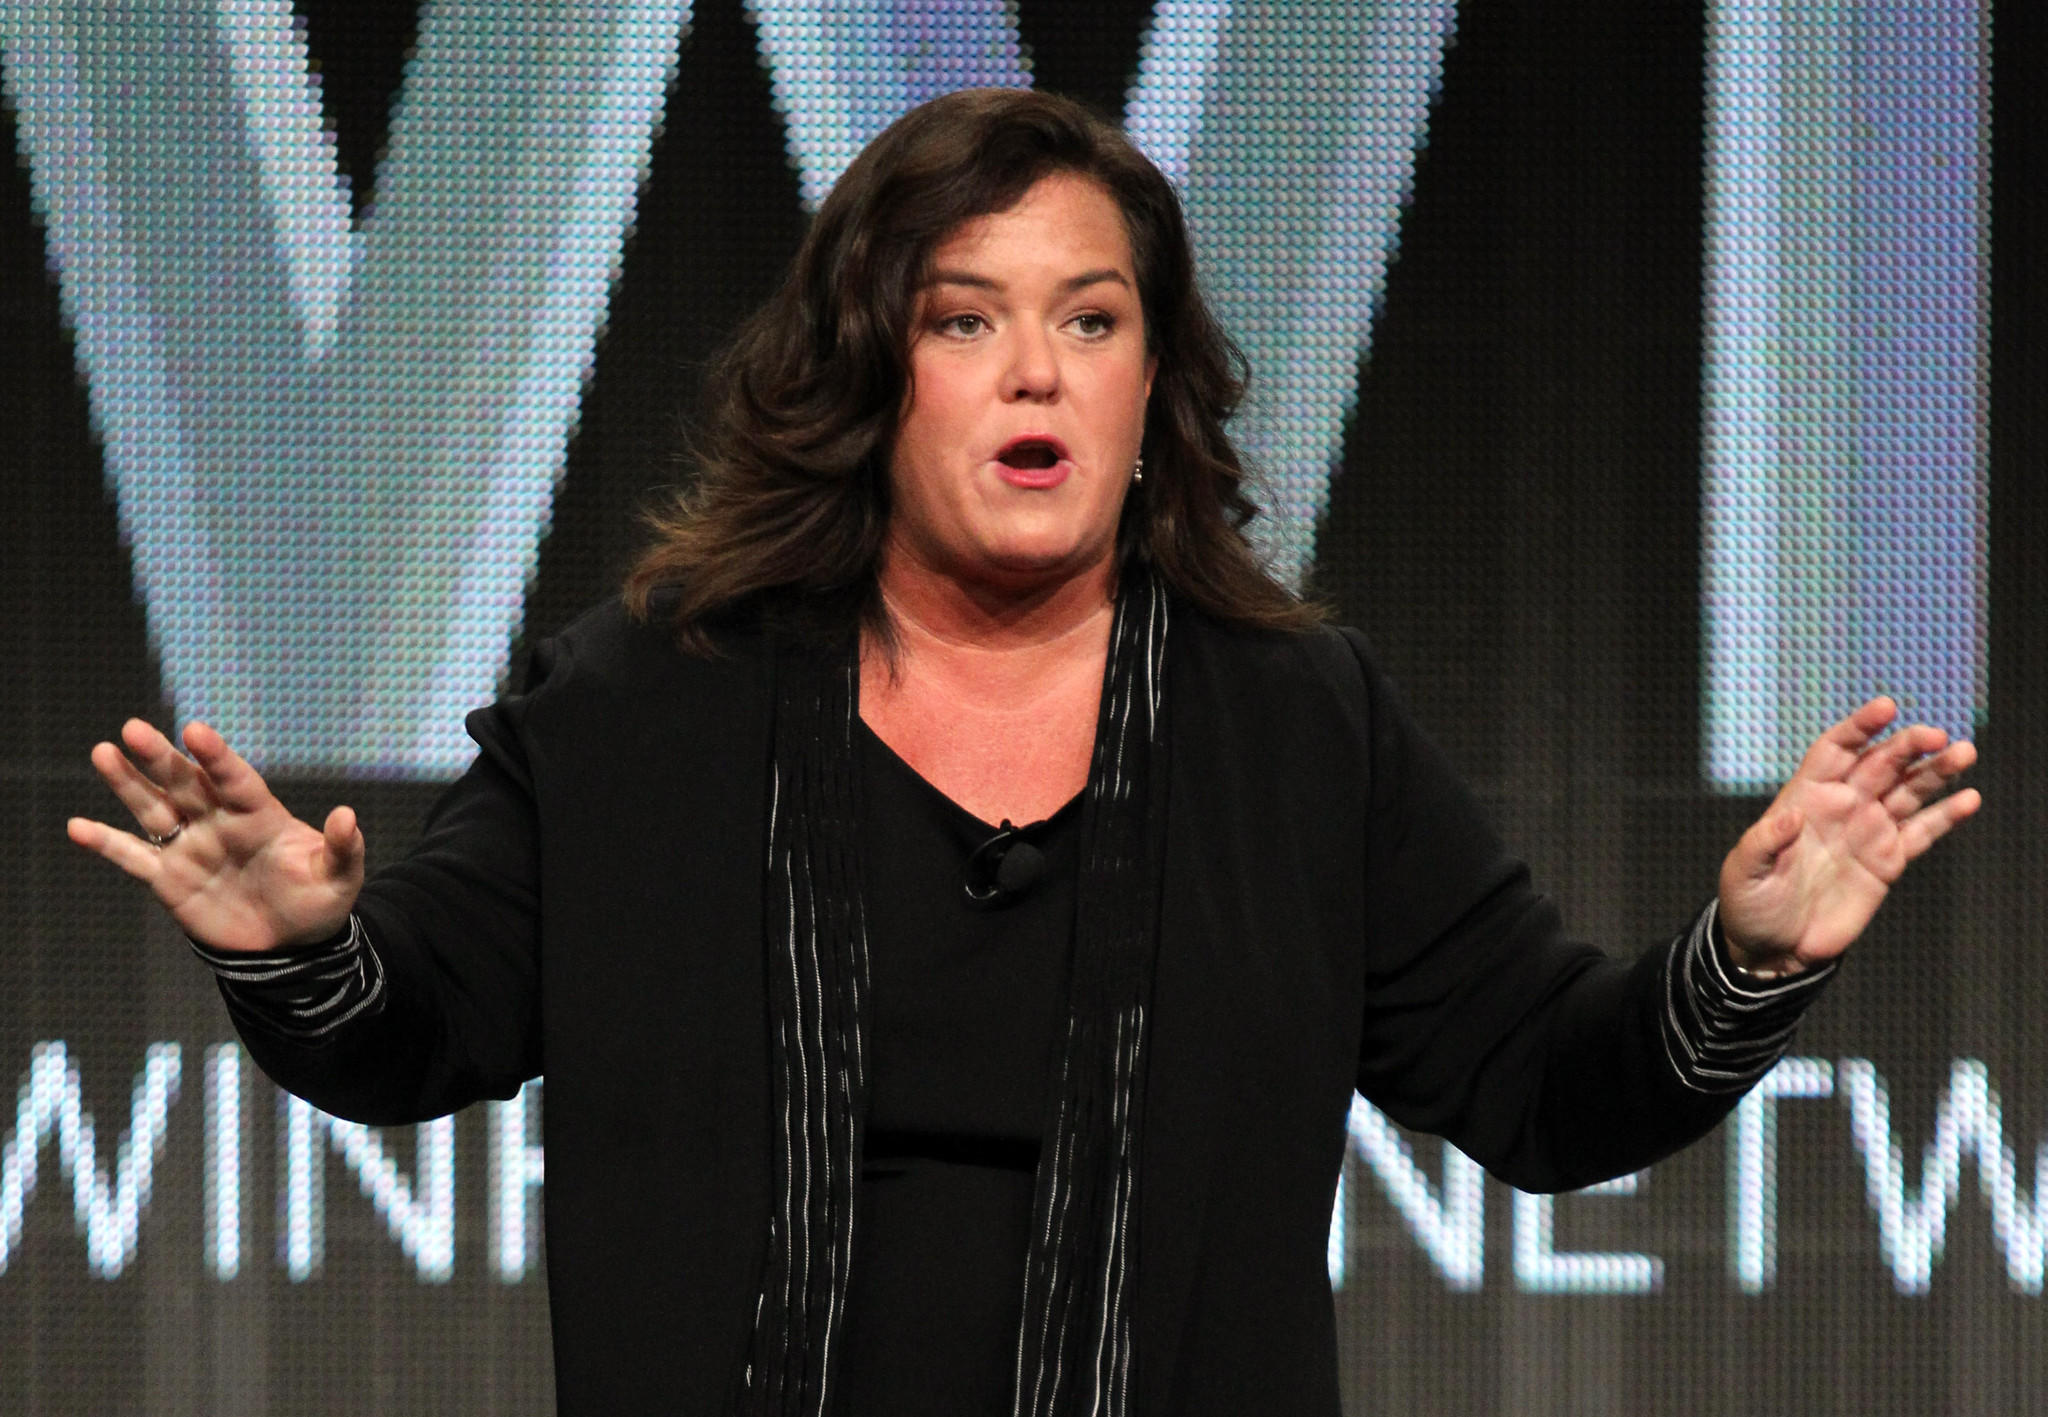 Rosie O'Donnell speaks during the 'The Rosie Show' panel during the OWN portion of the 2011 Summer TCA Tour held.